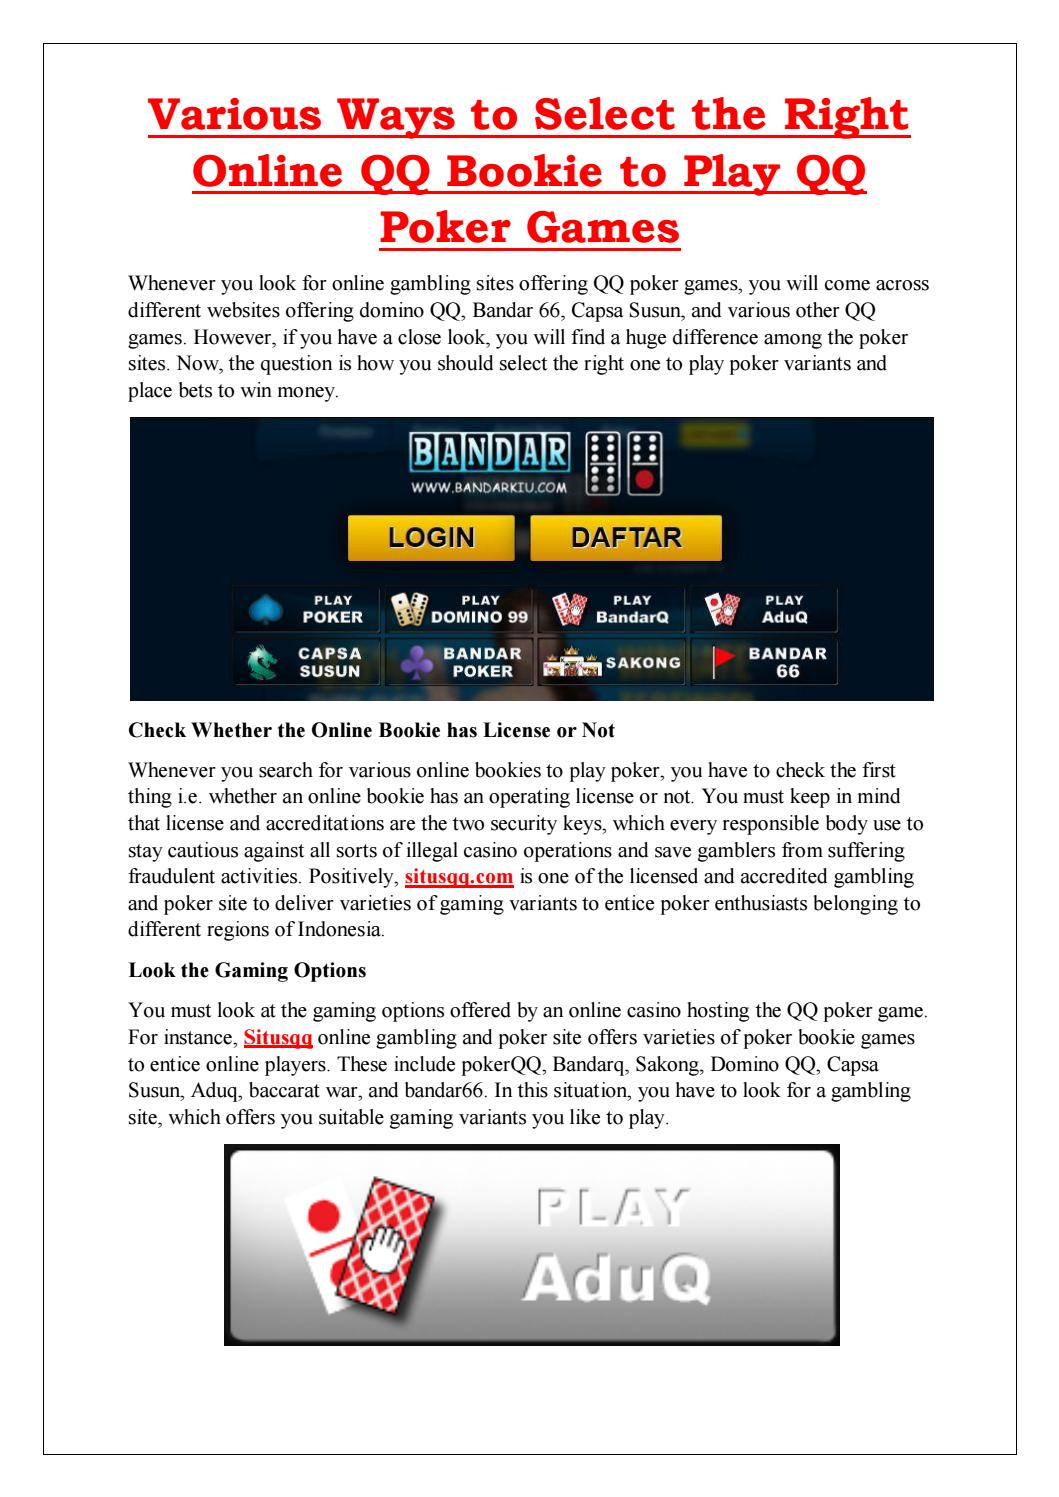 Situs Qq Online Judi Poker Pkv Games Dominoqq Terpercaya By Lee Smith Issuu